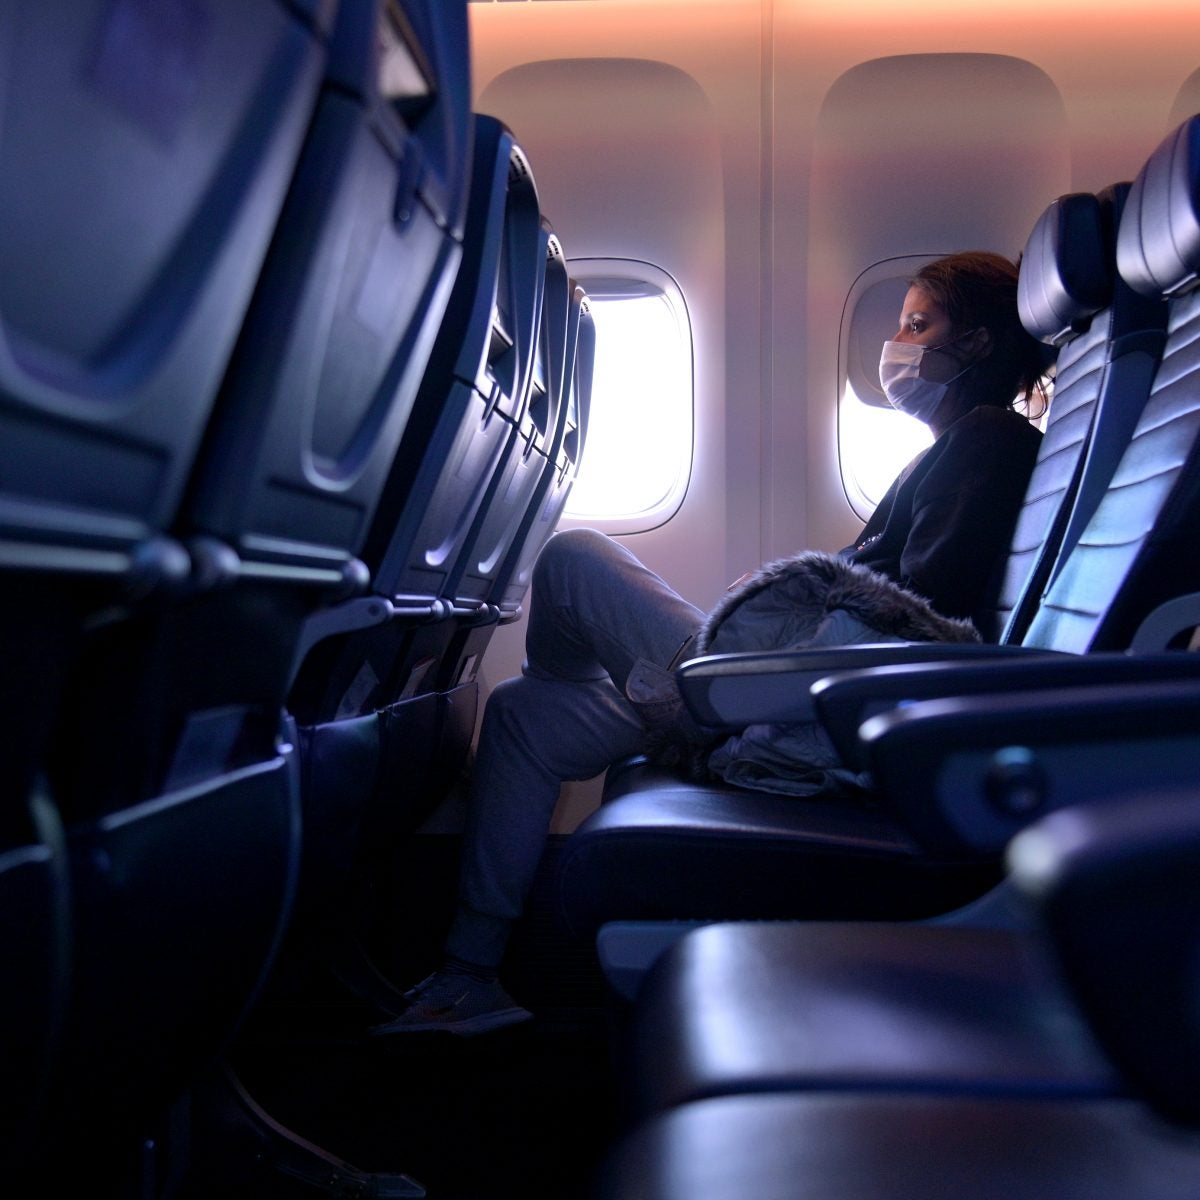 Defying Mask Rules on a Flight? TSA Says You'll Pay Double The Fine.